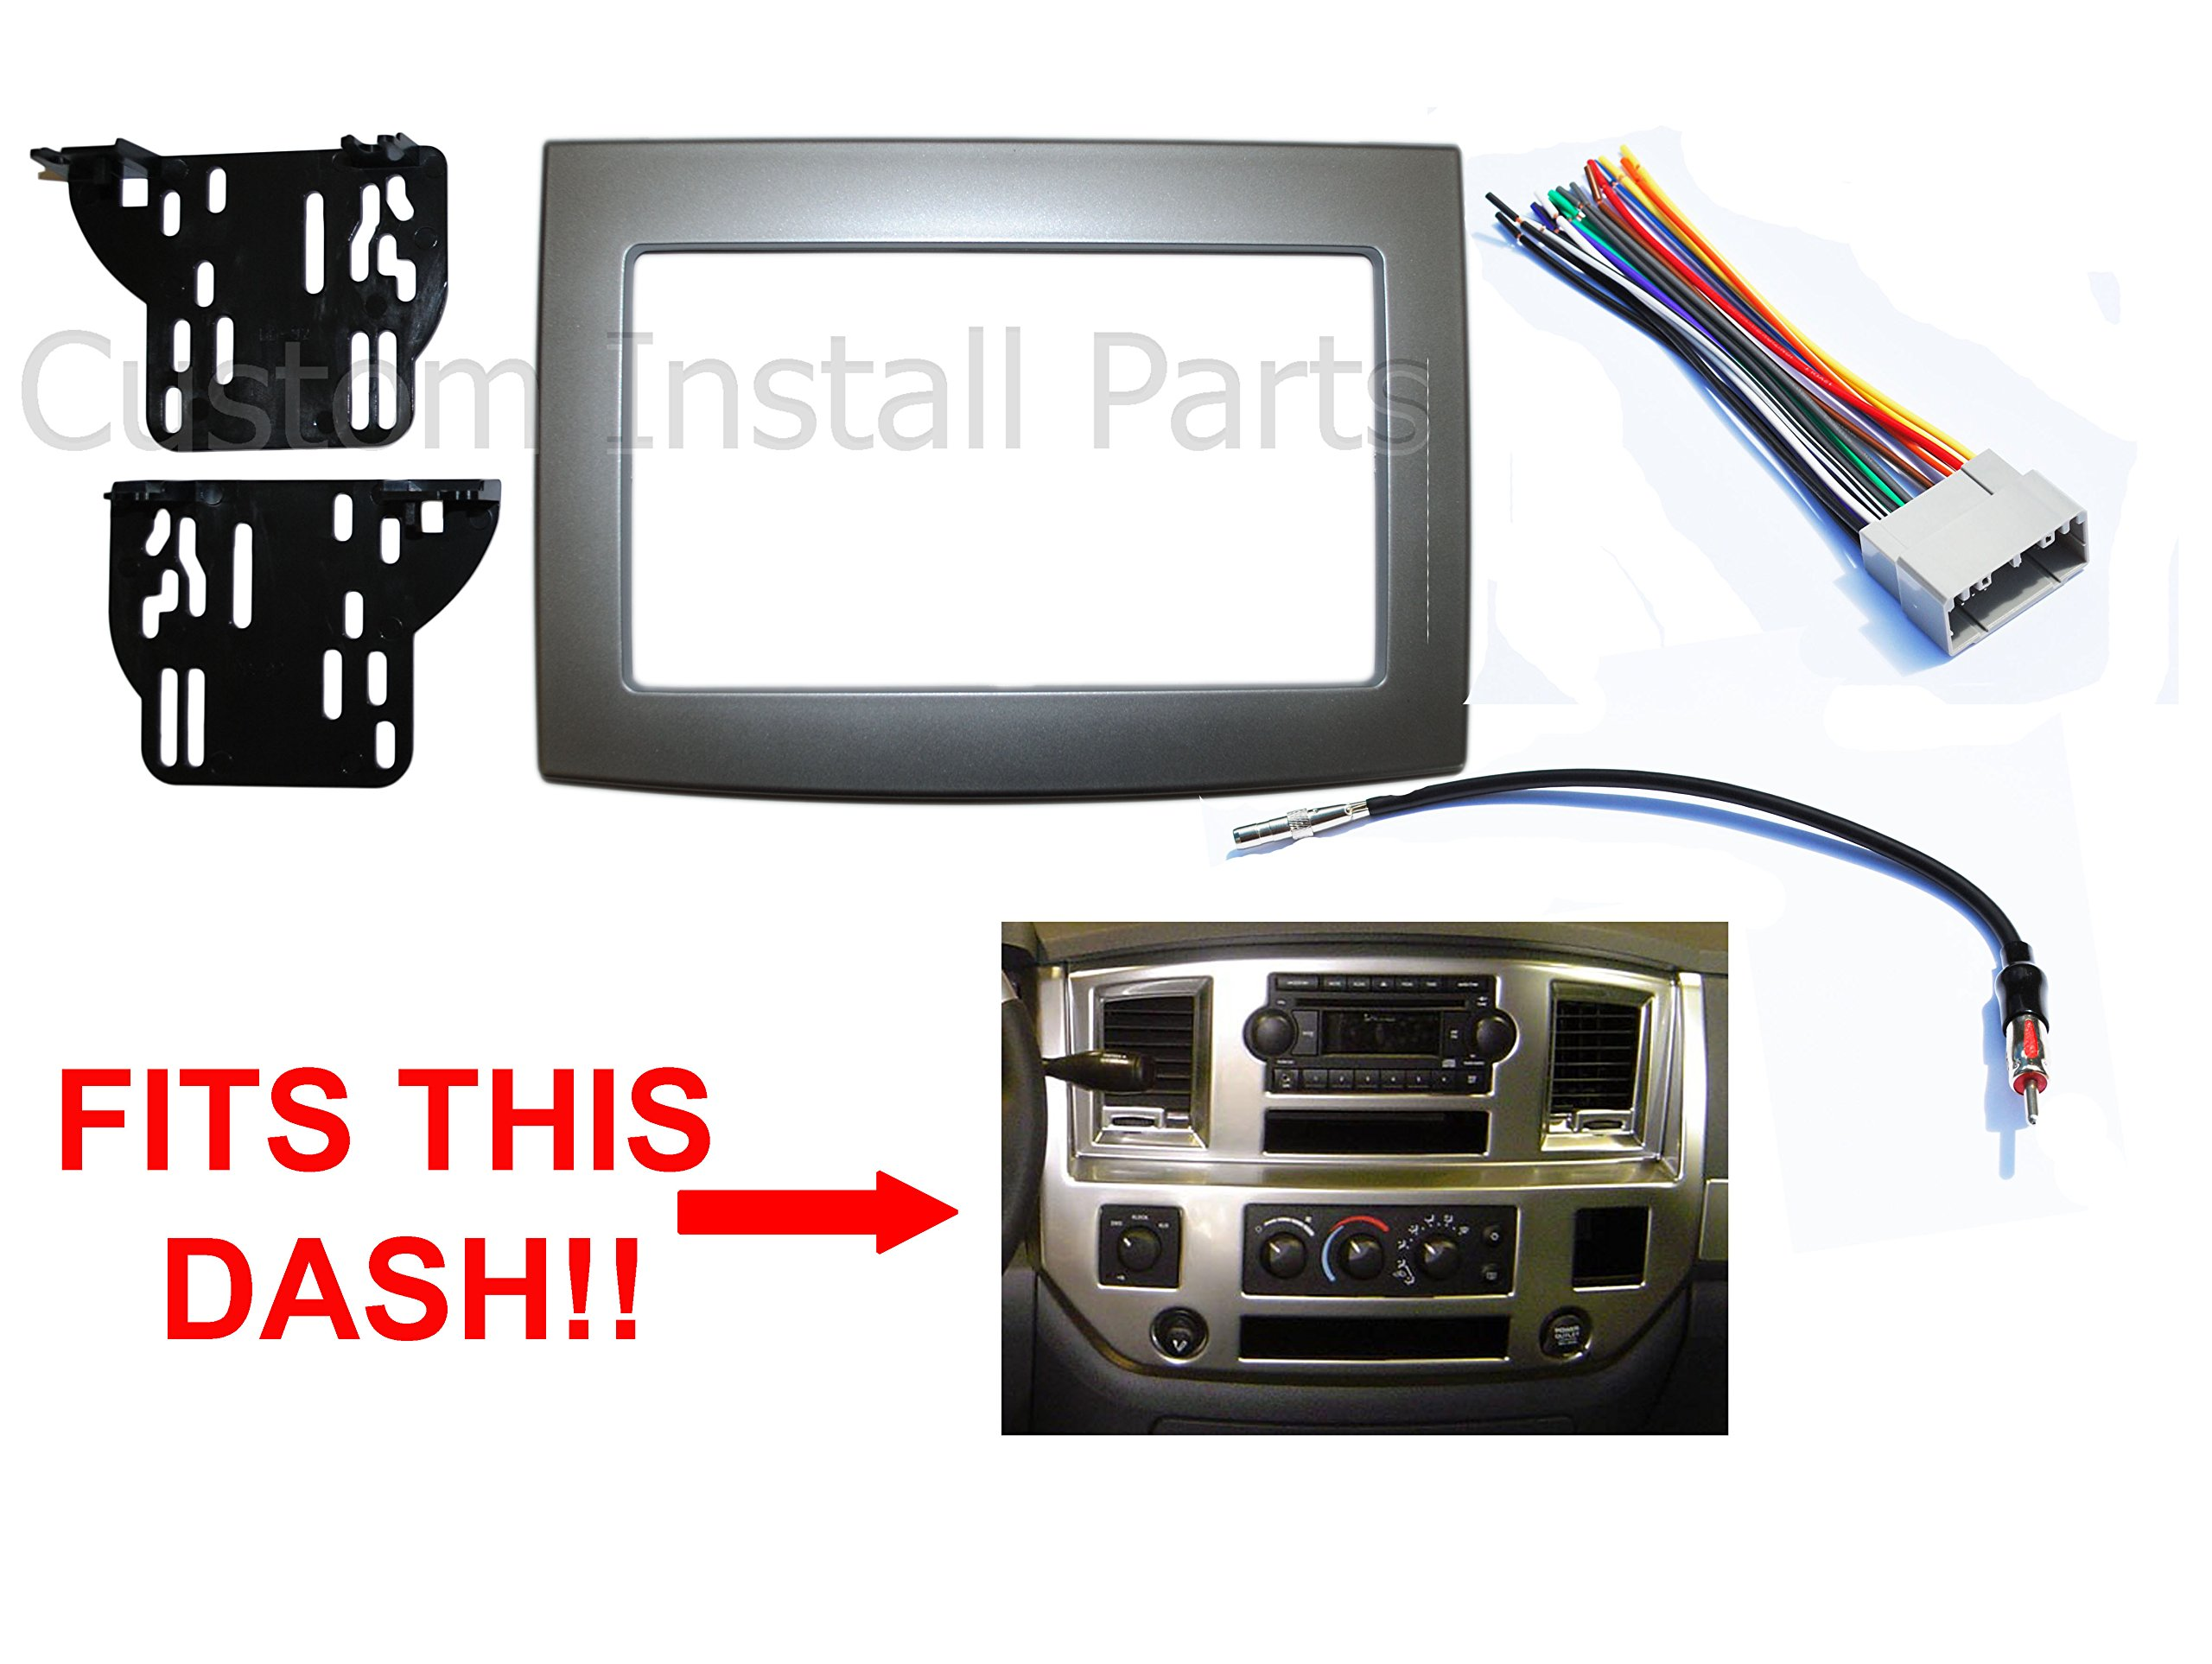 Silver Double Din Dash Install Kit w/Wiring Harness Radio Stereo Fits Dodge Ram by Custom Install Parts